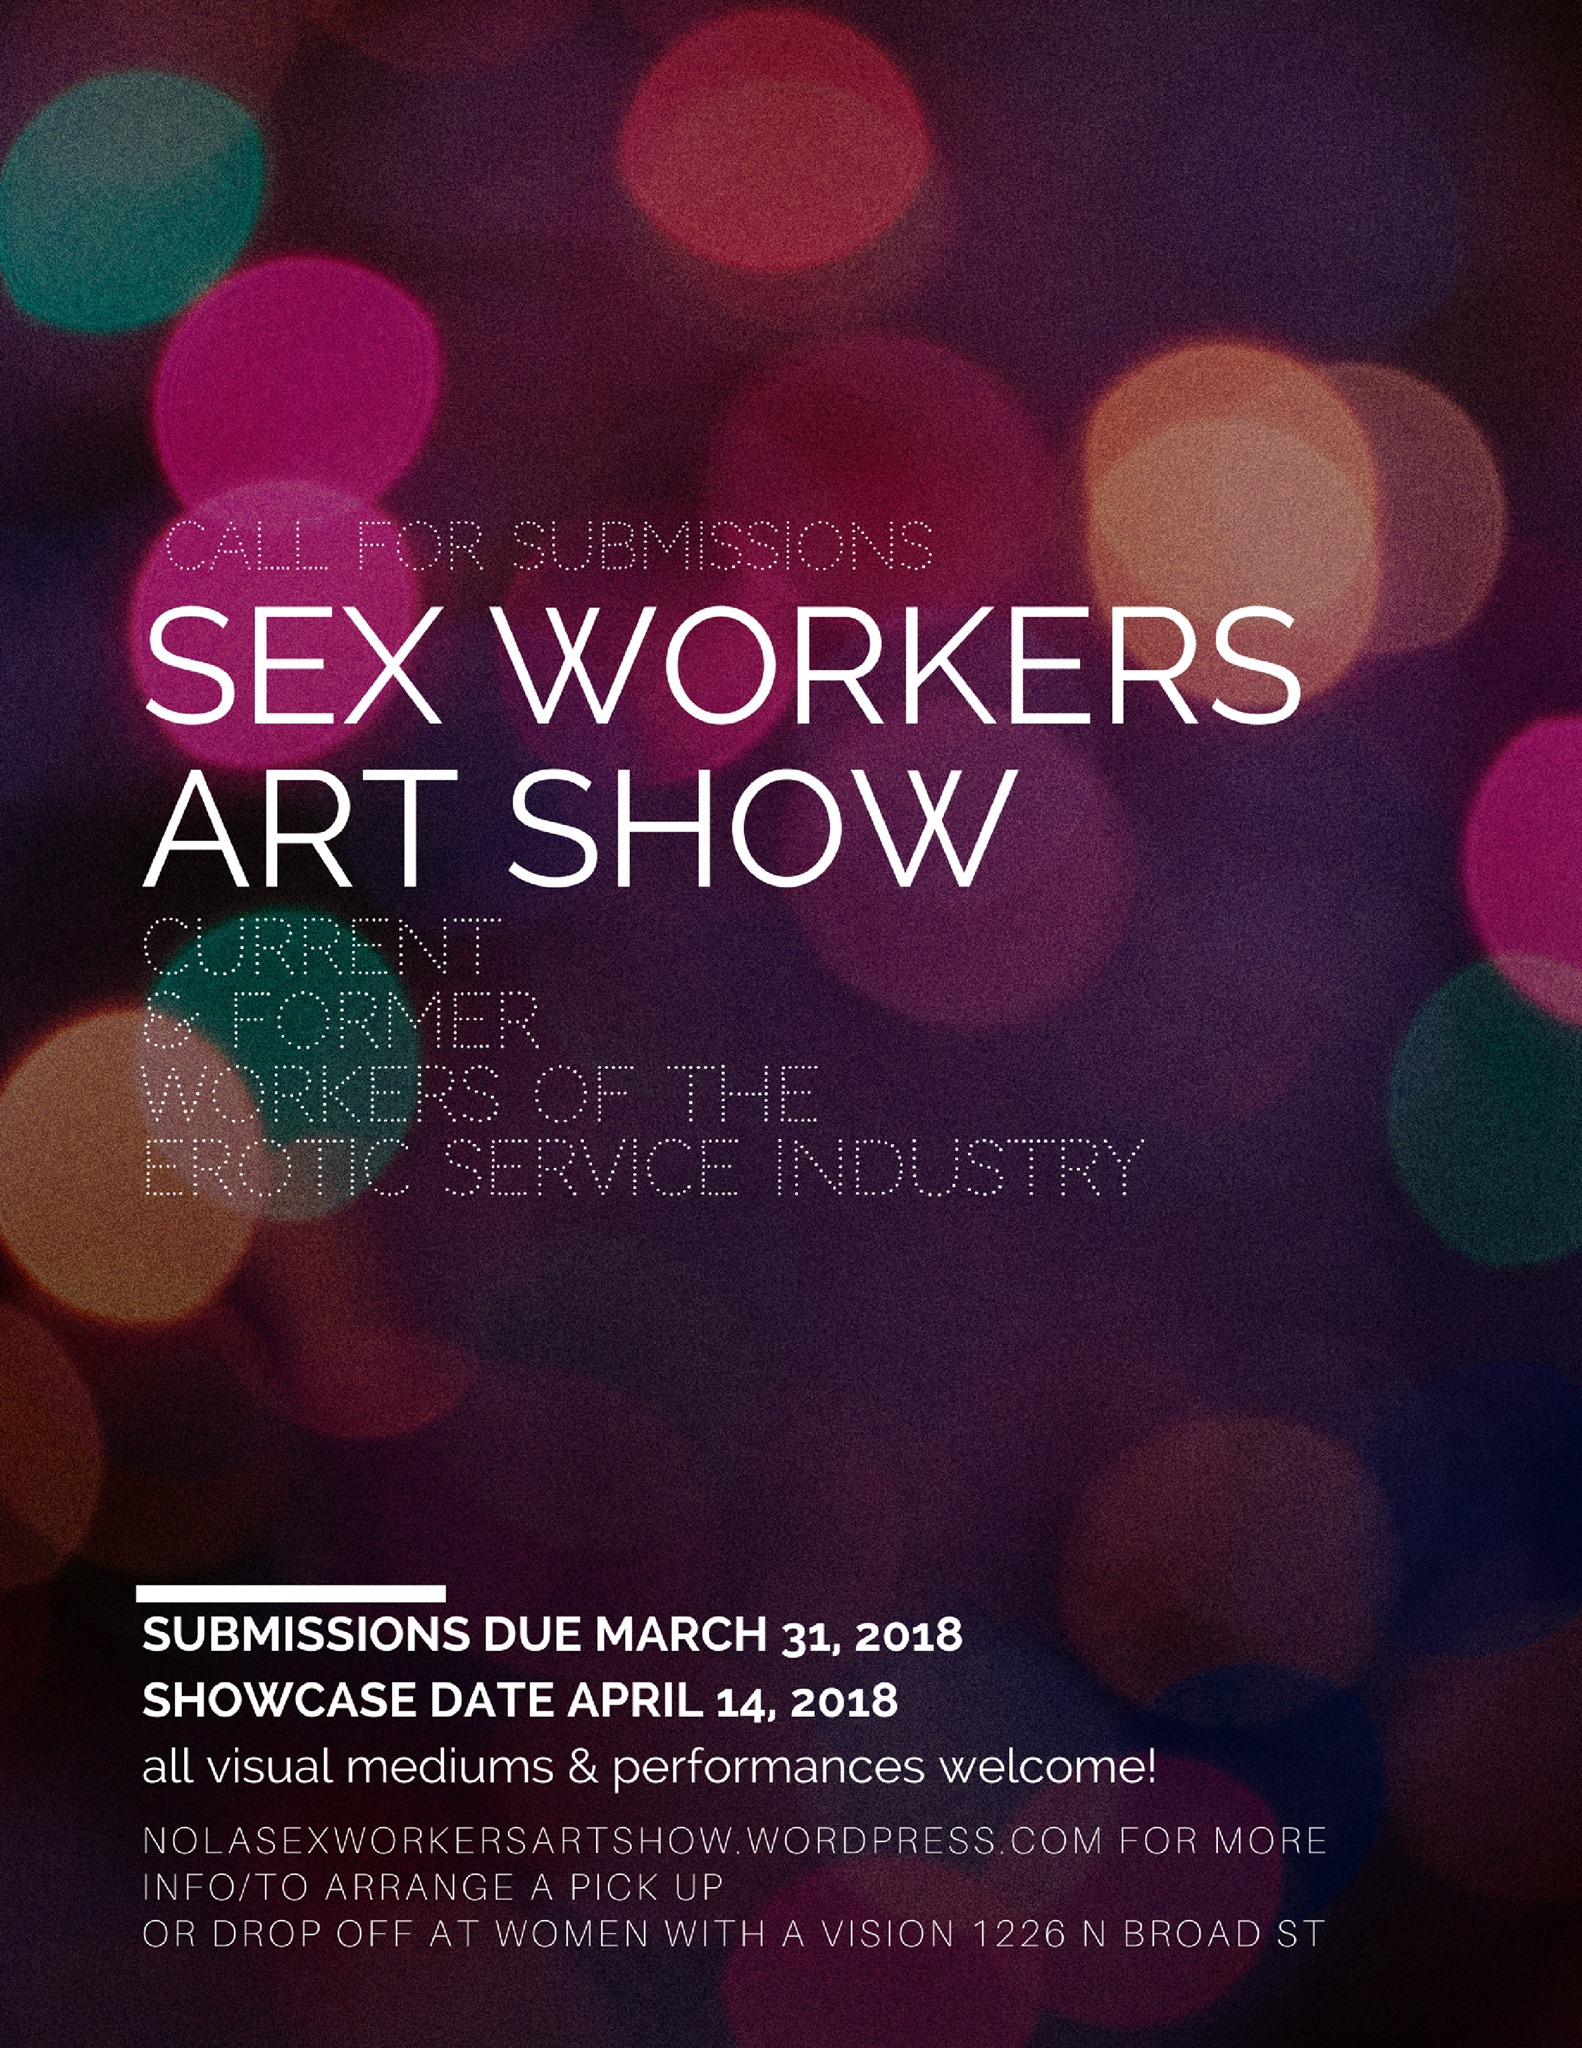 The sex workers art show